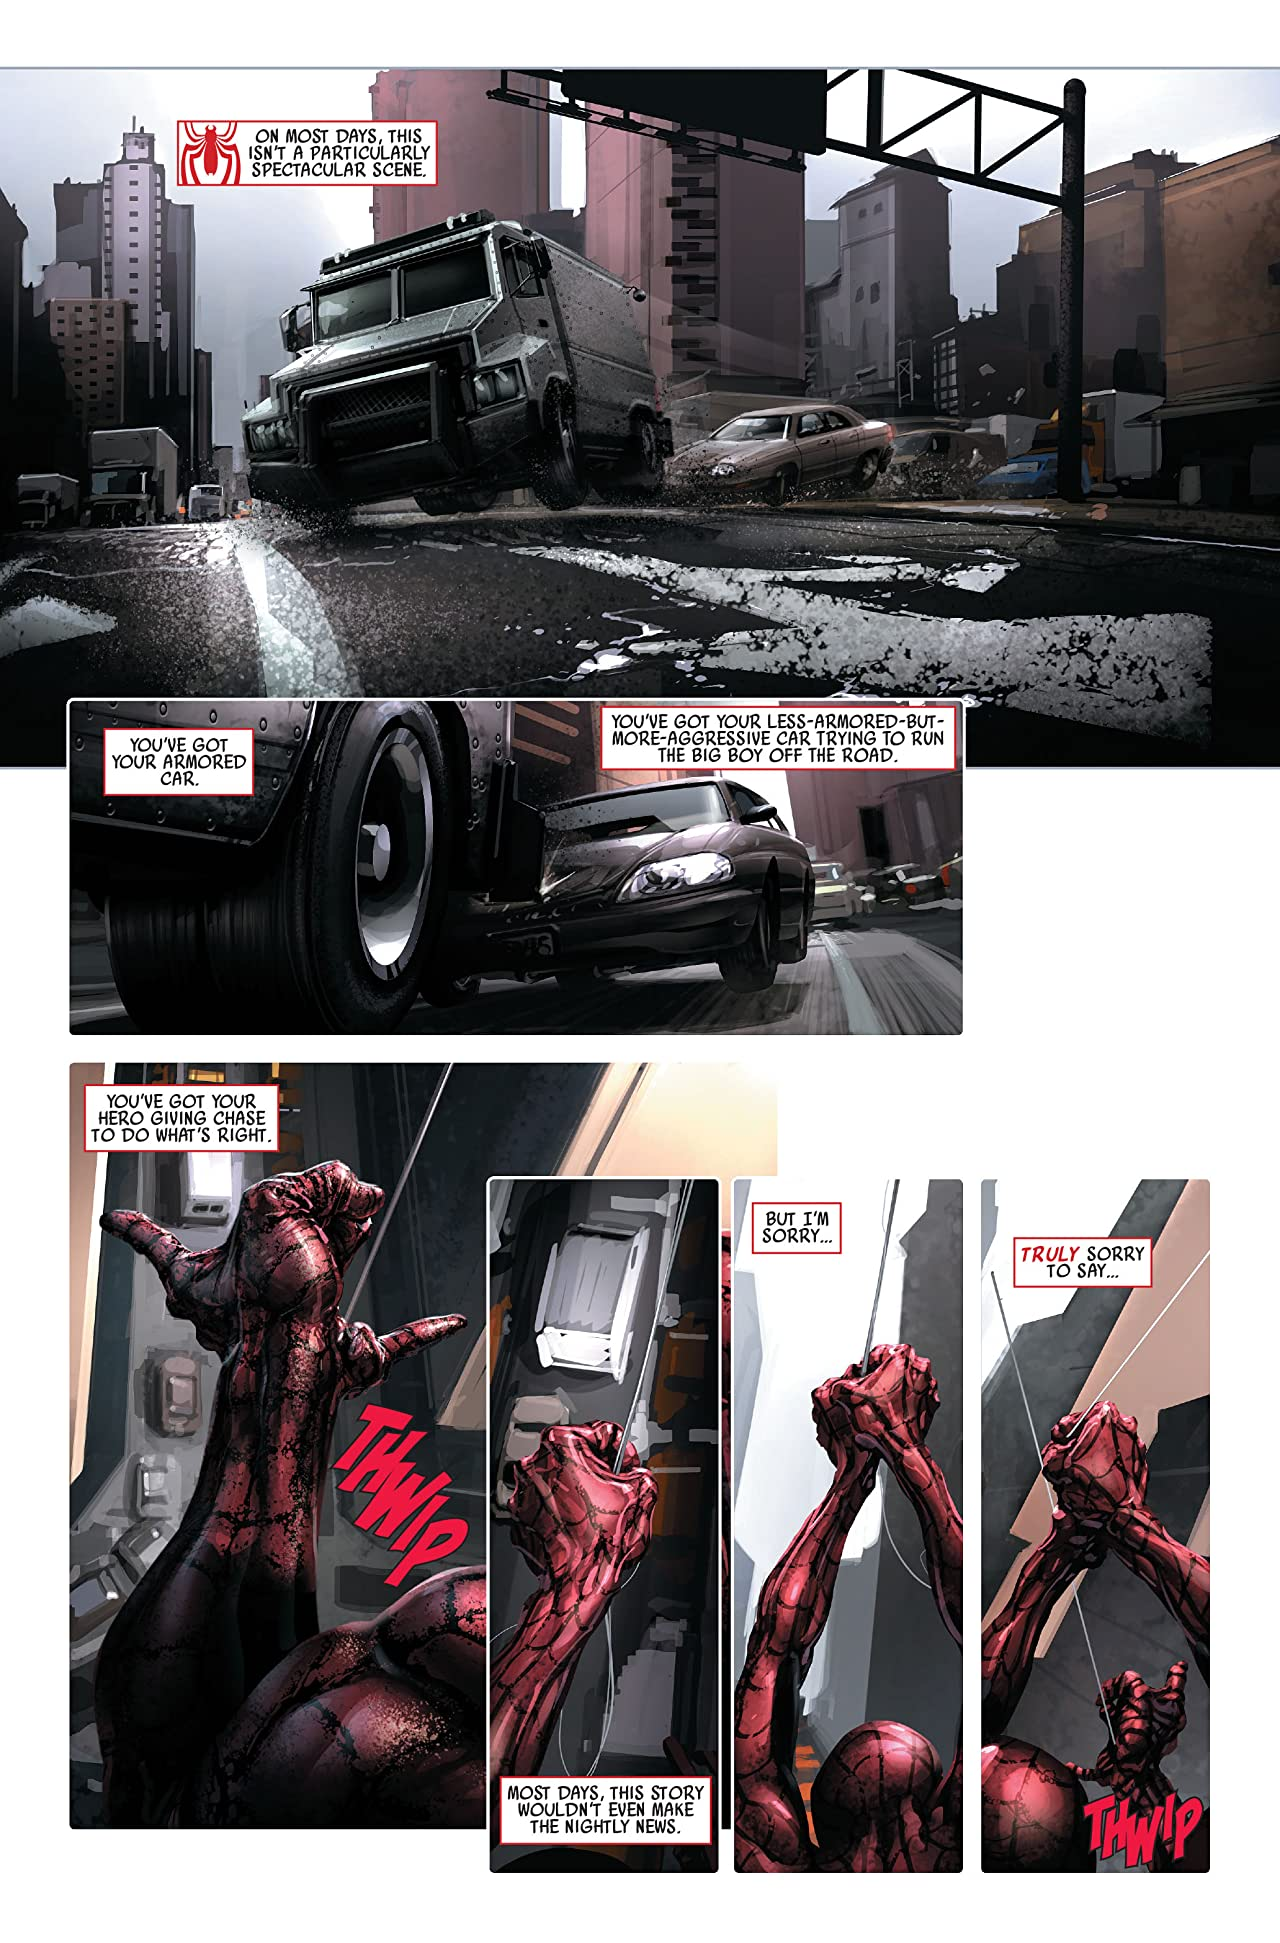 Carnage #1 (of 5)